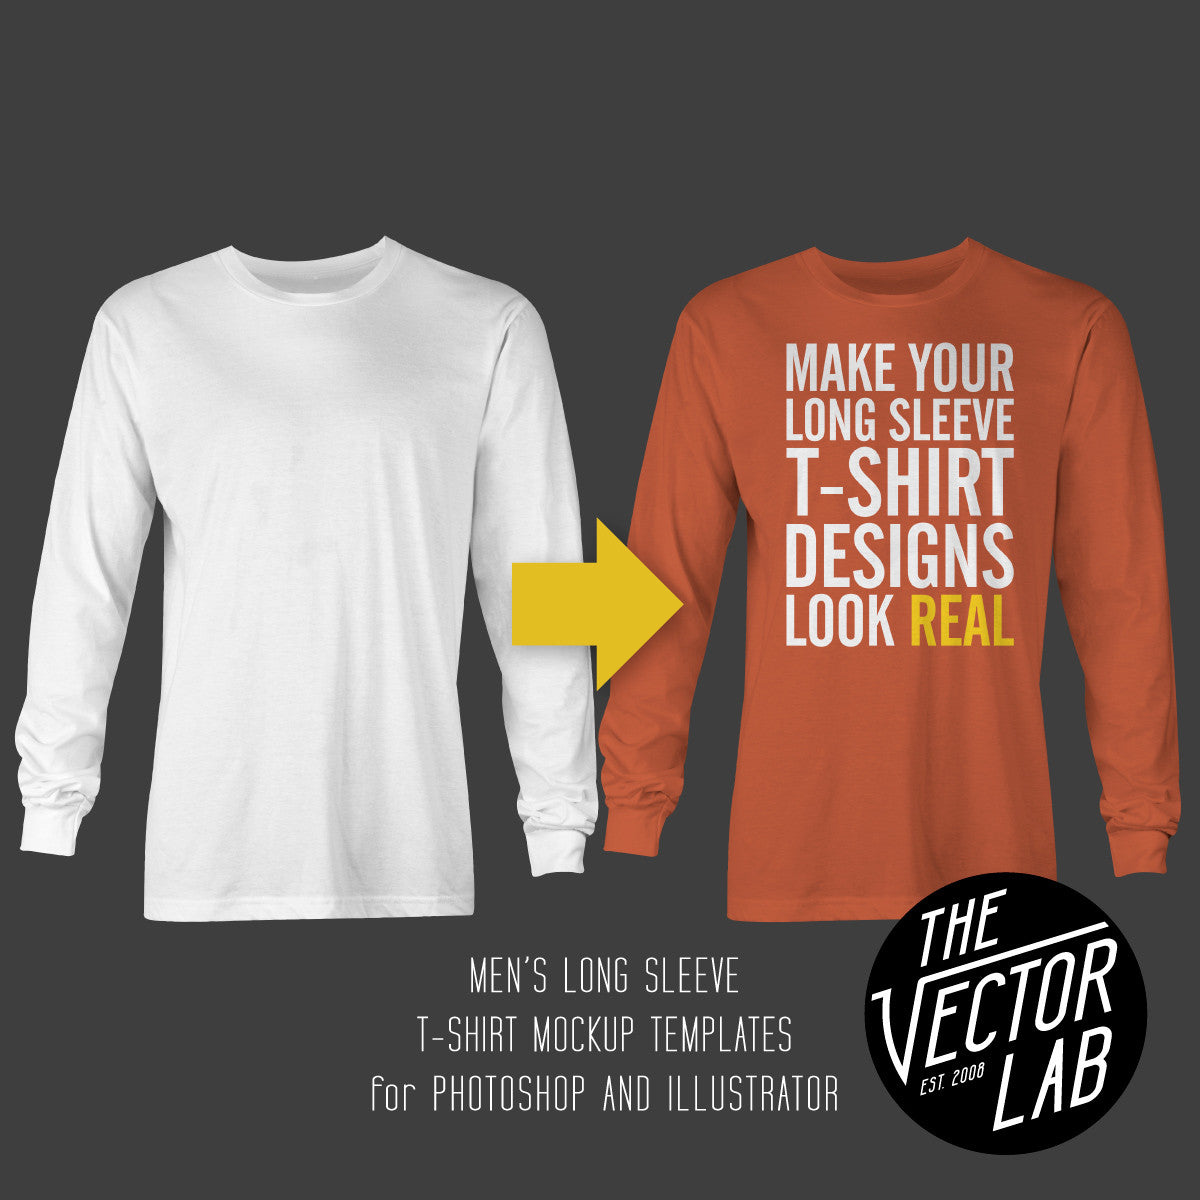 Men's Long Sleeve T-Shirt Mockup Templates